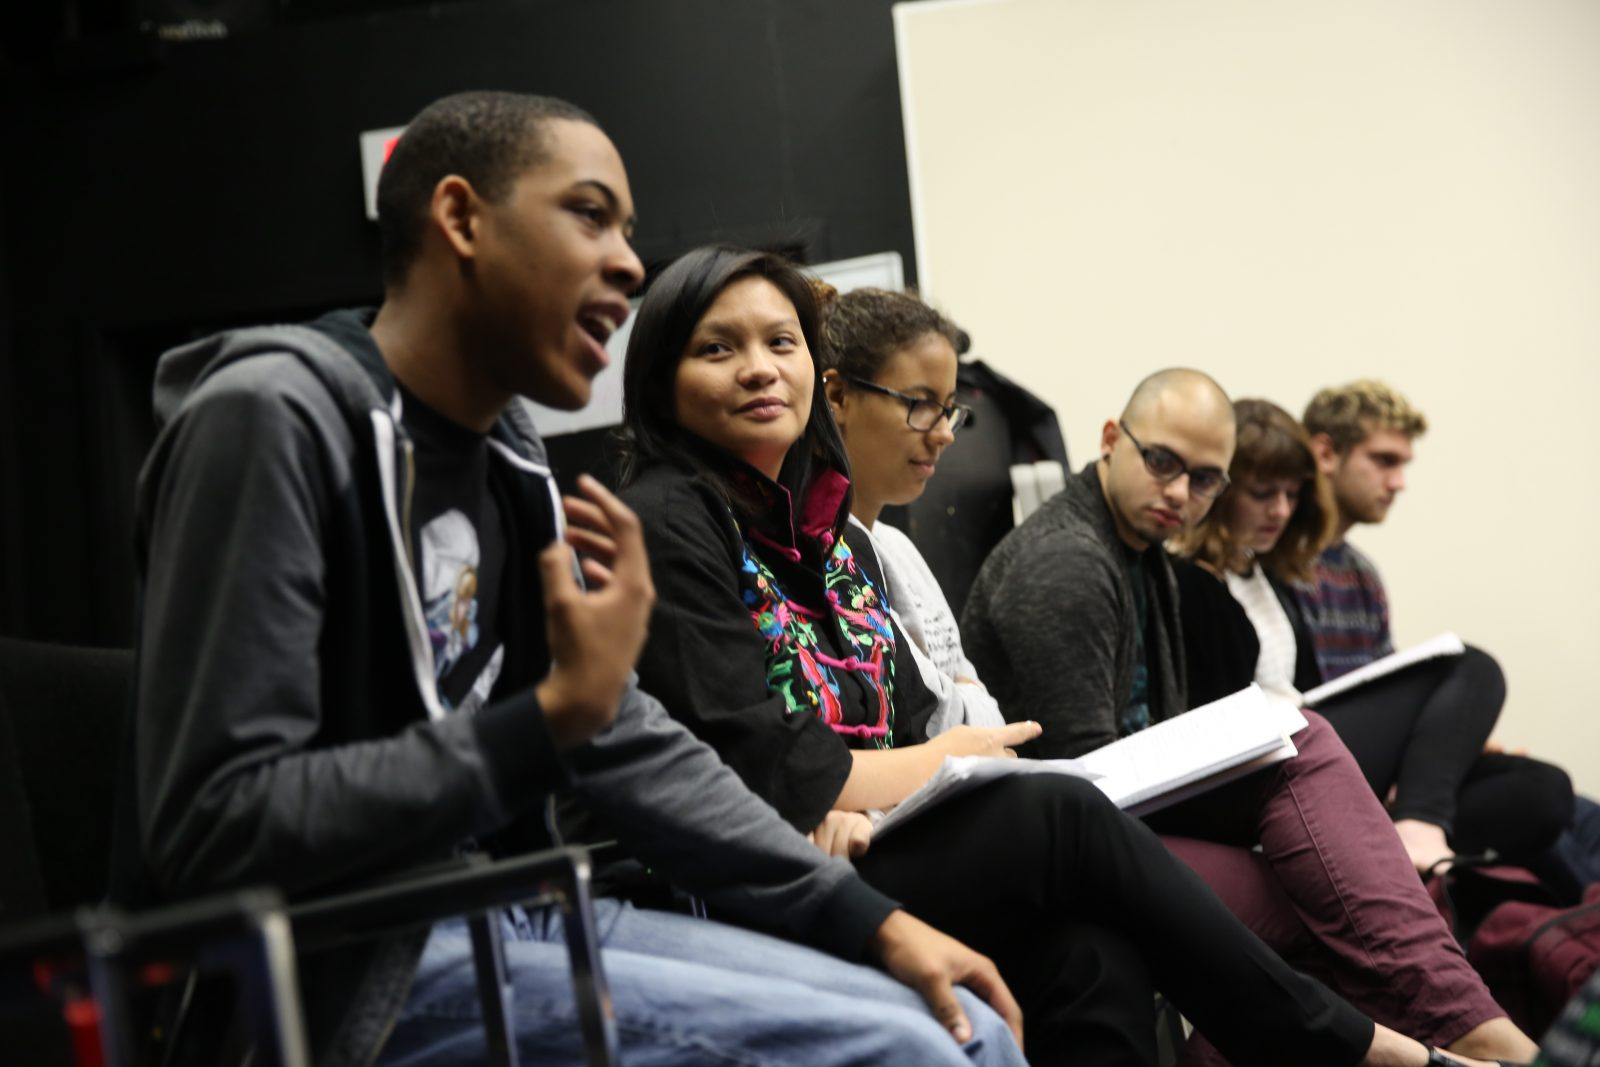 students and professor seated in row